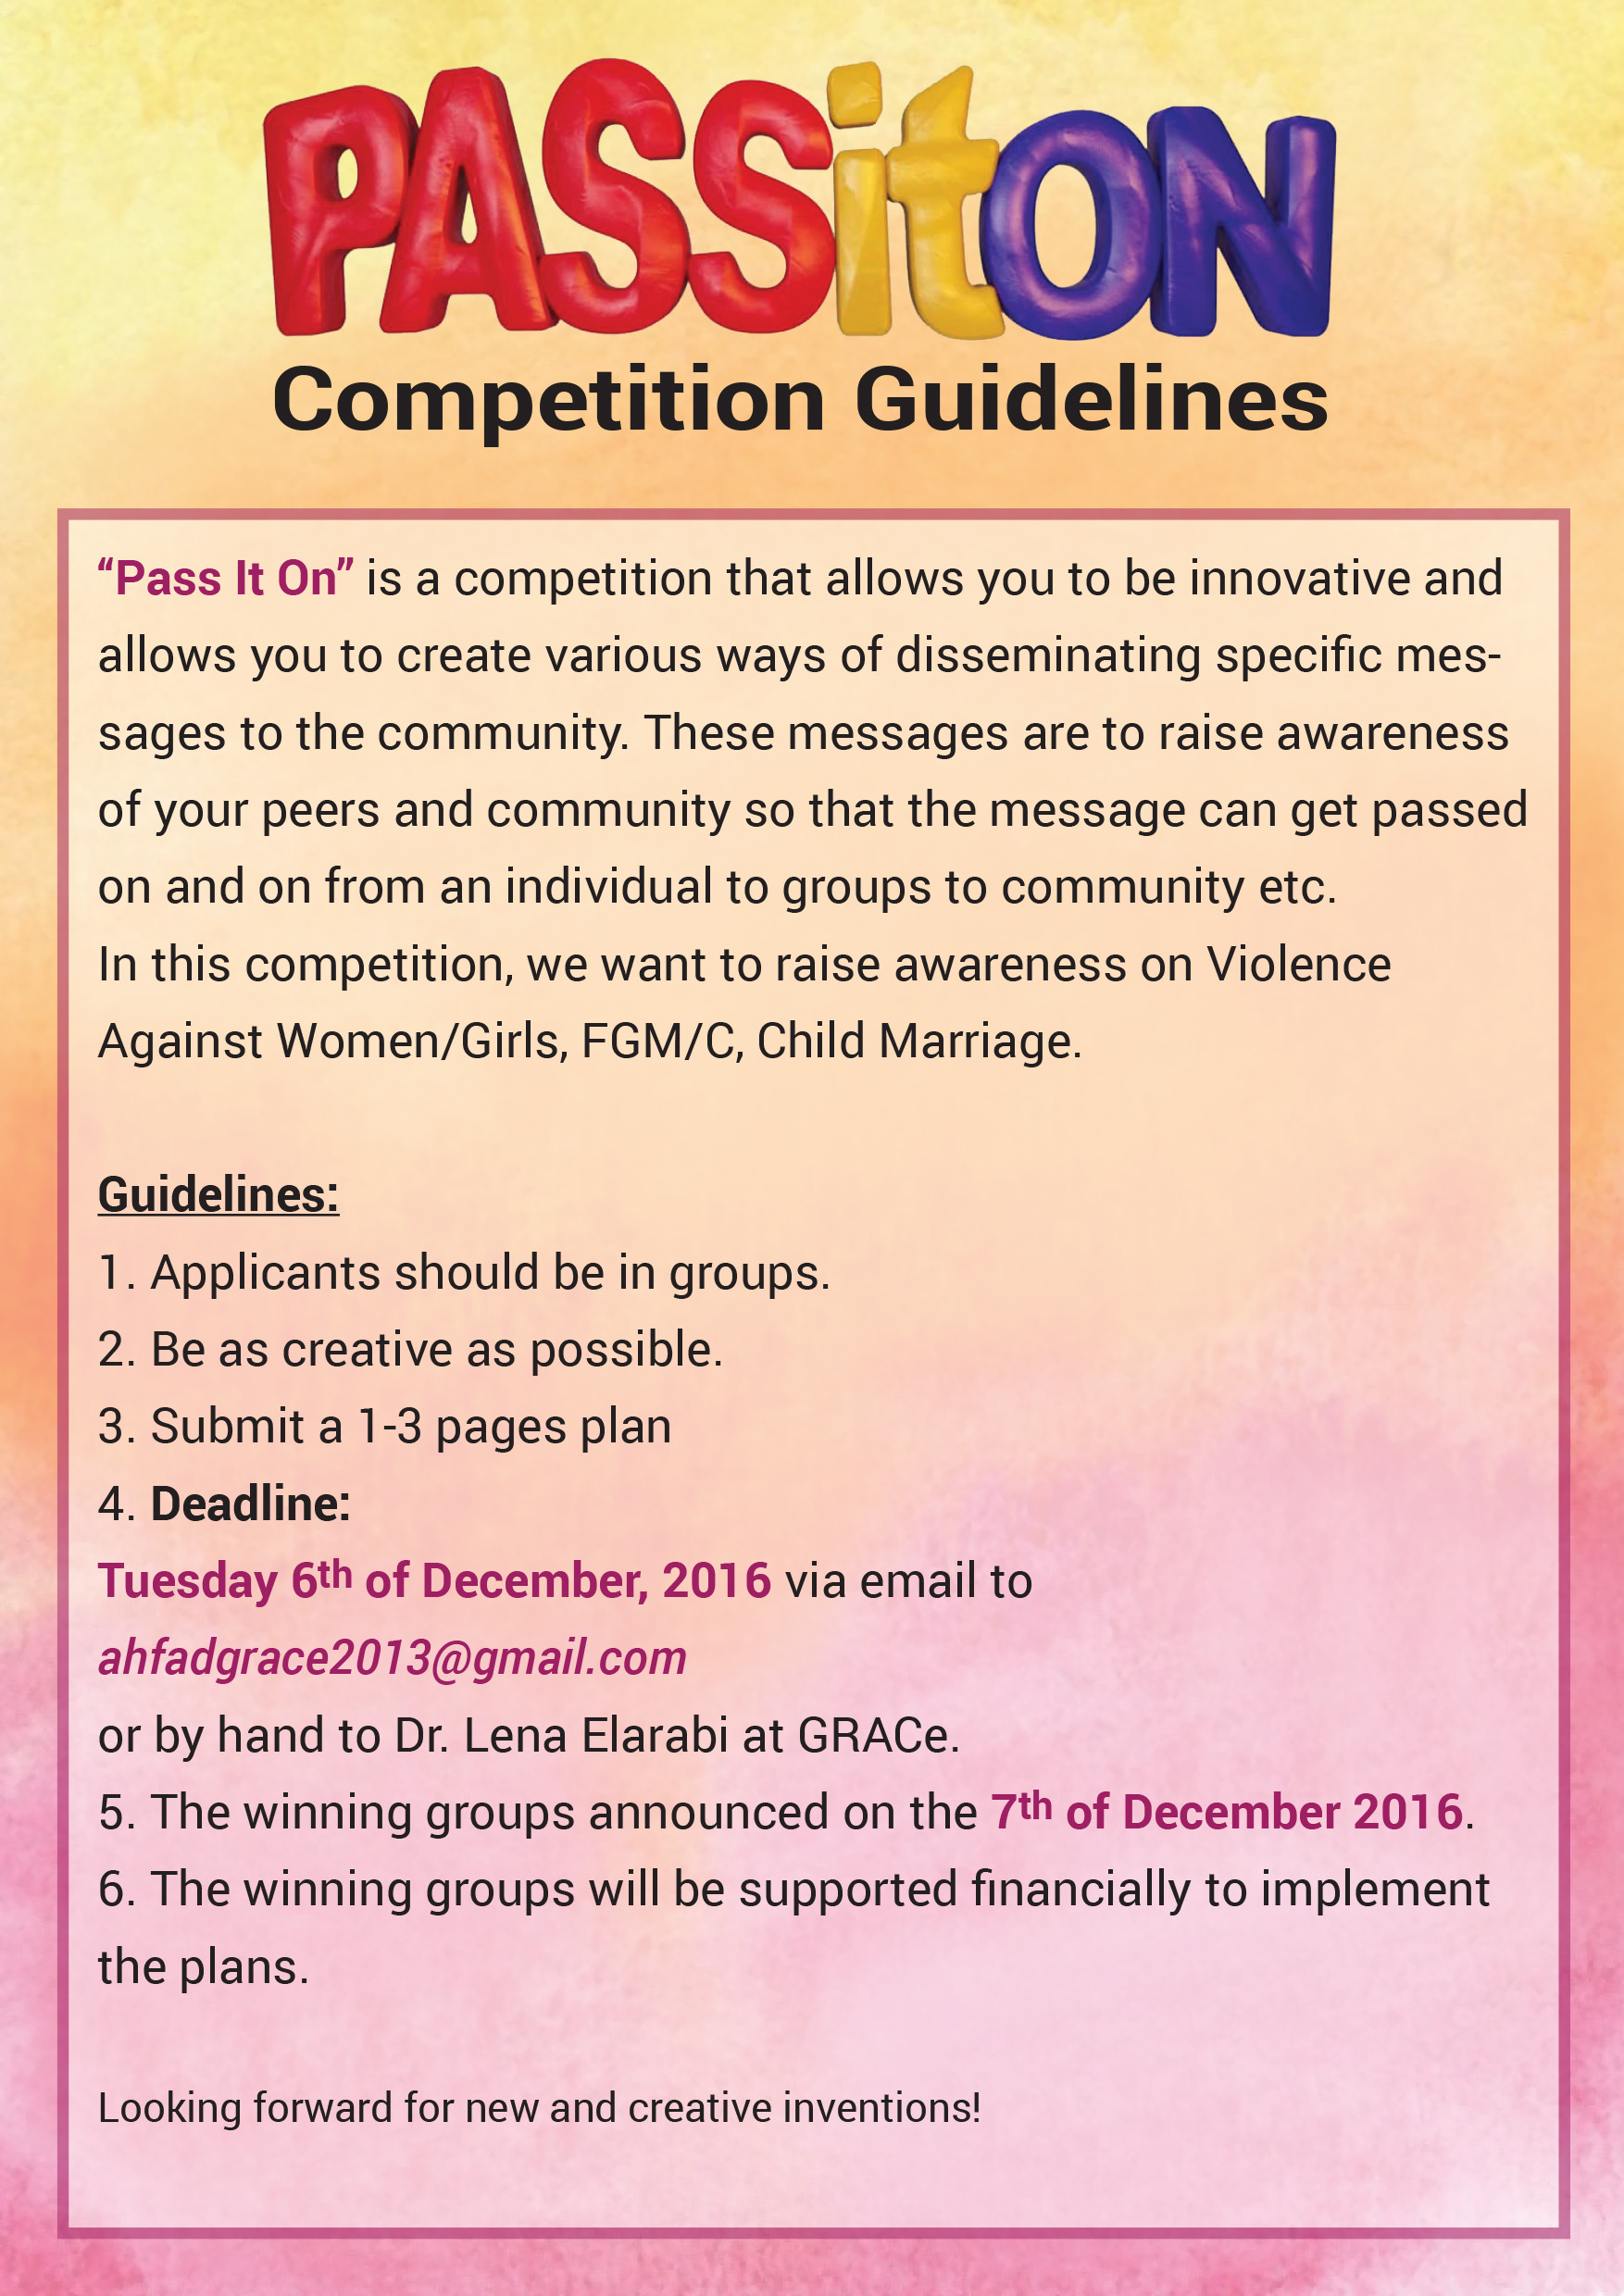 poster-guidelines1